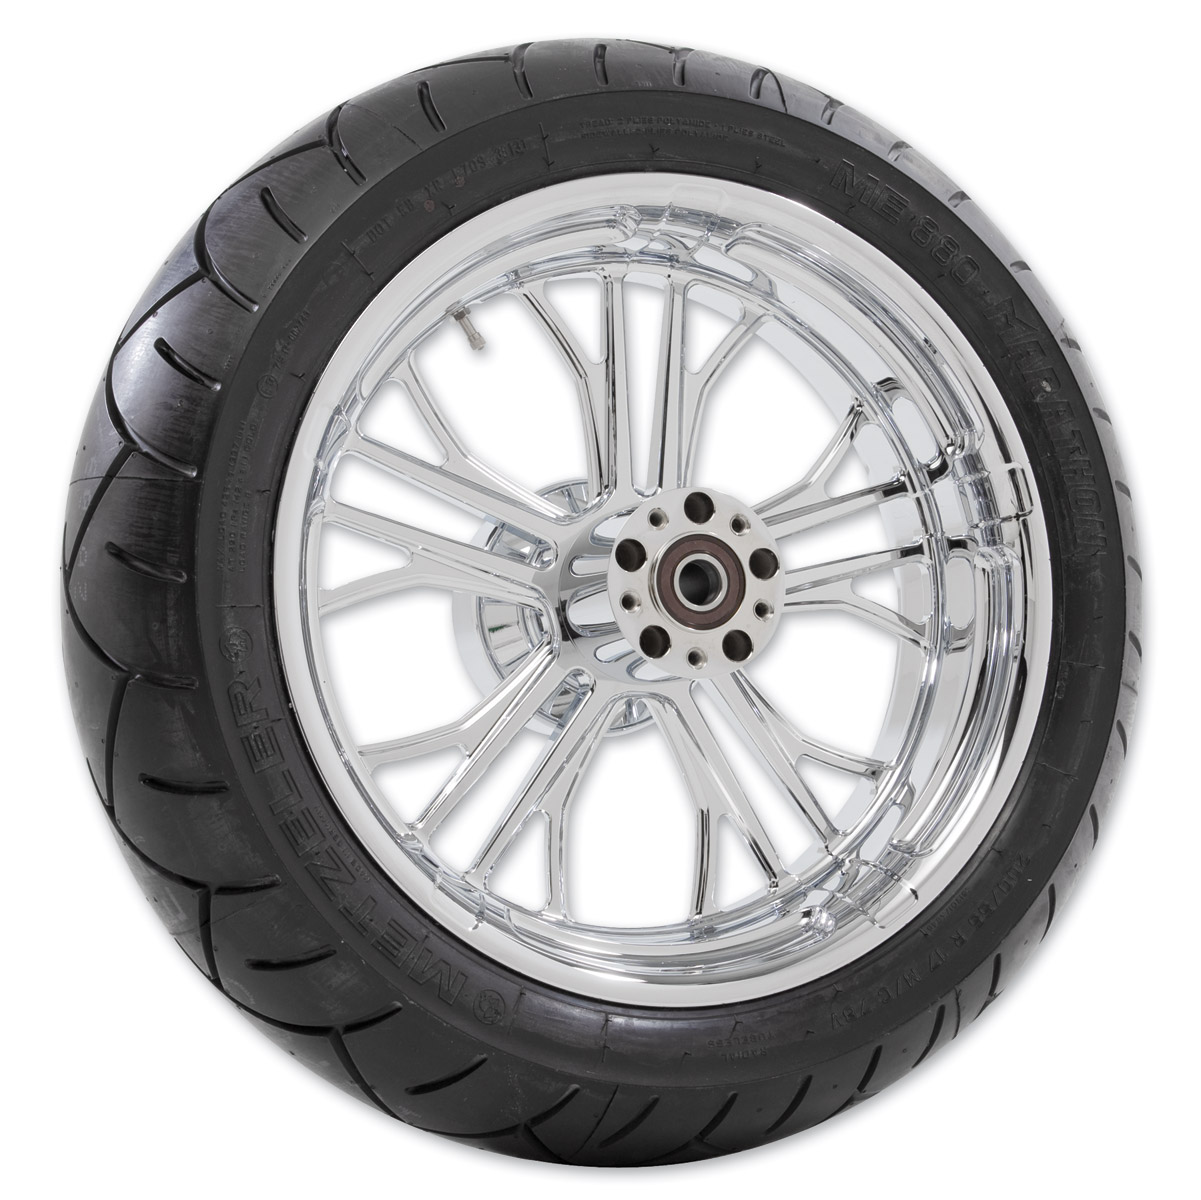 Performance Machine Dixon Chrome Rear Wheel Package, 17″ x 6″ without ABS